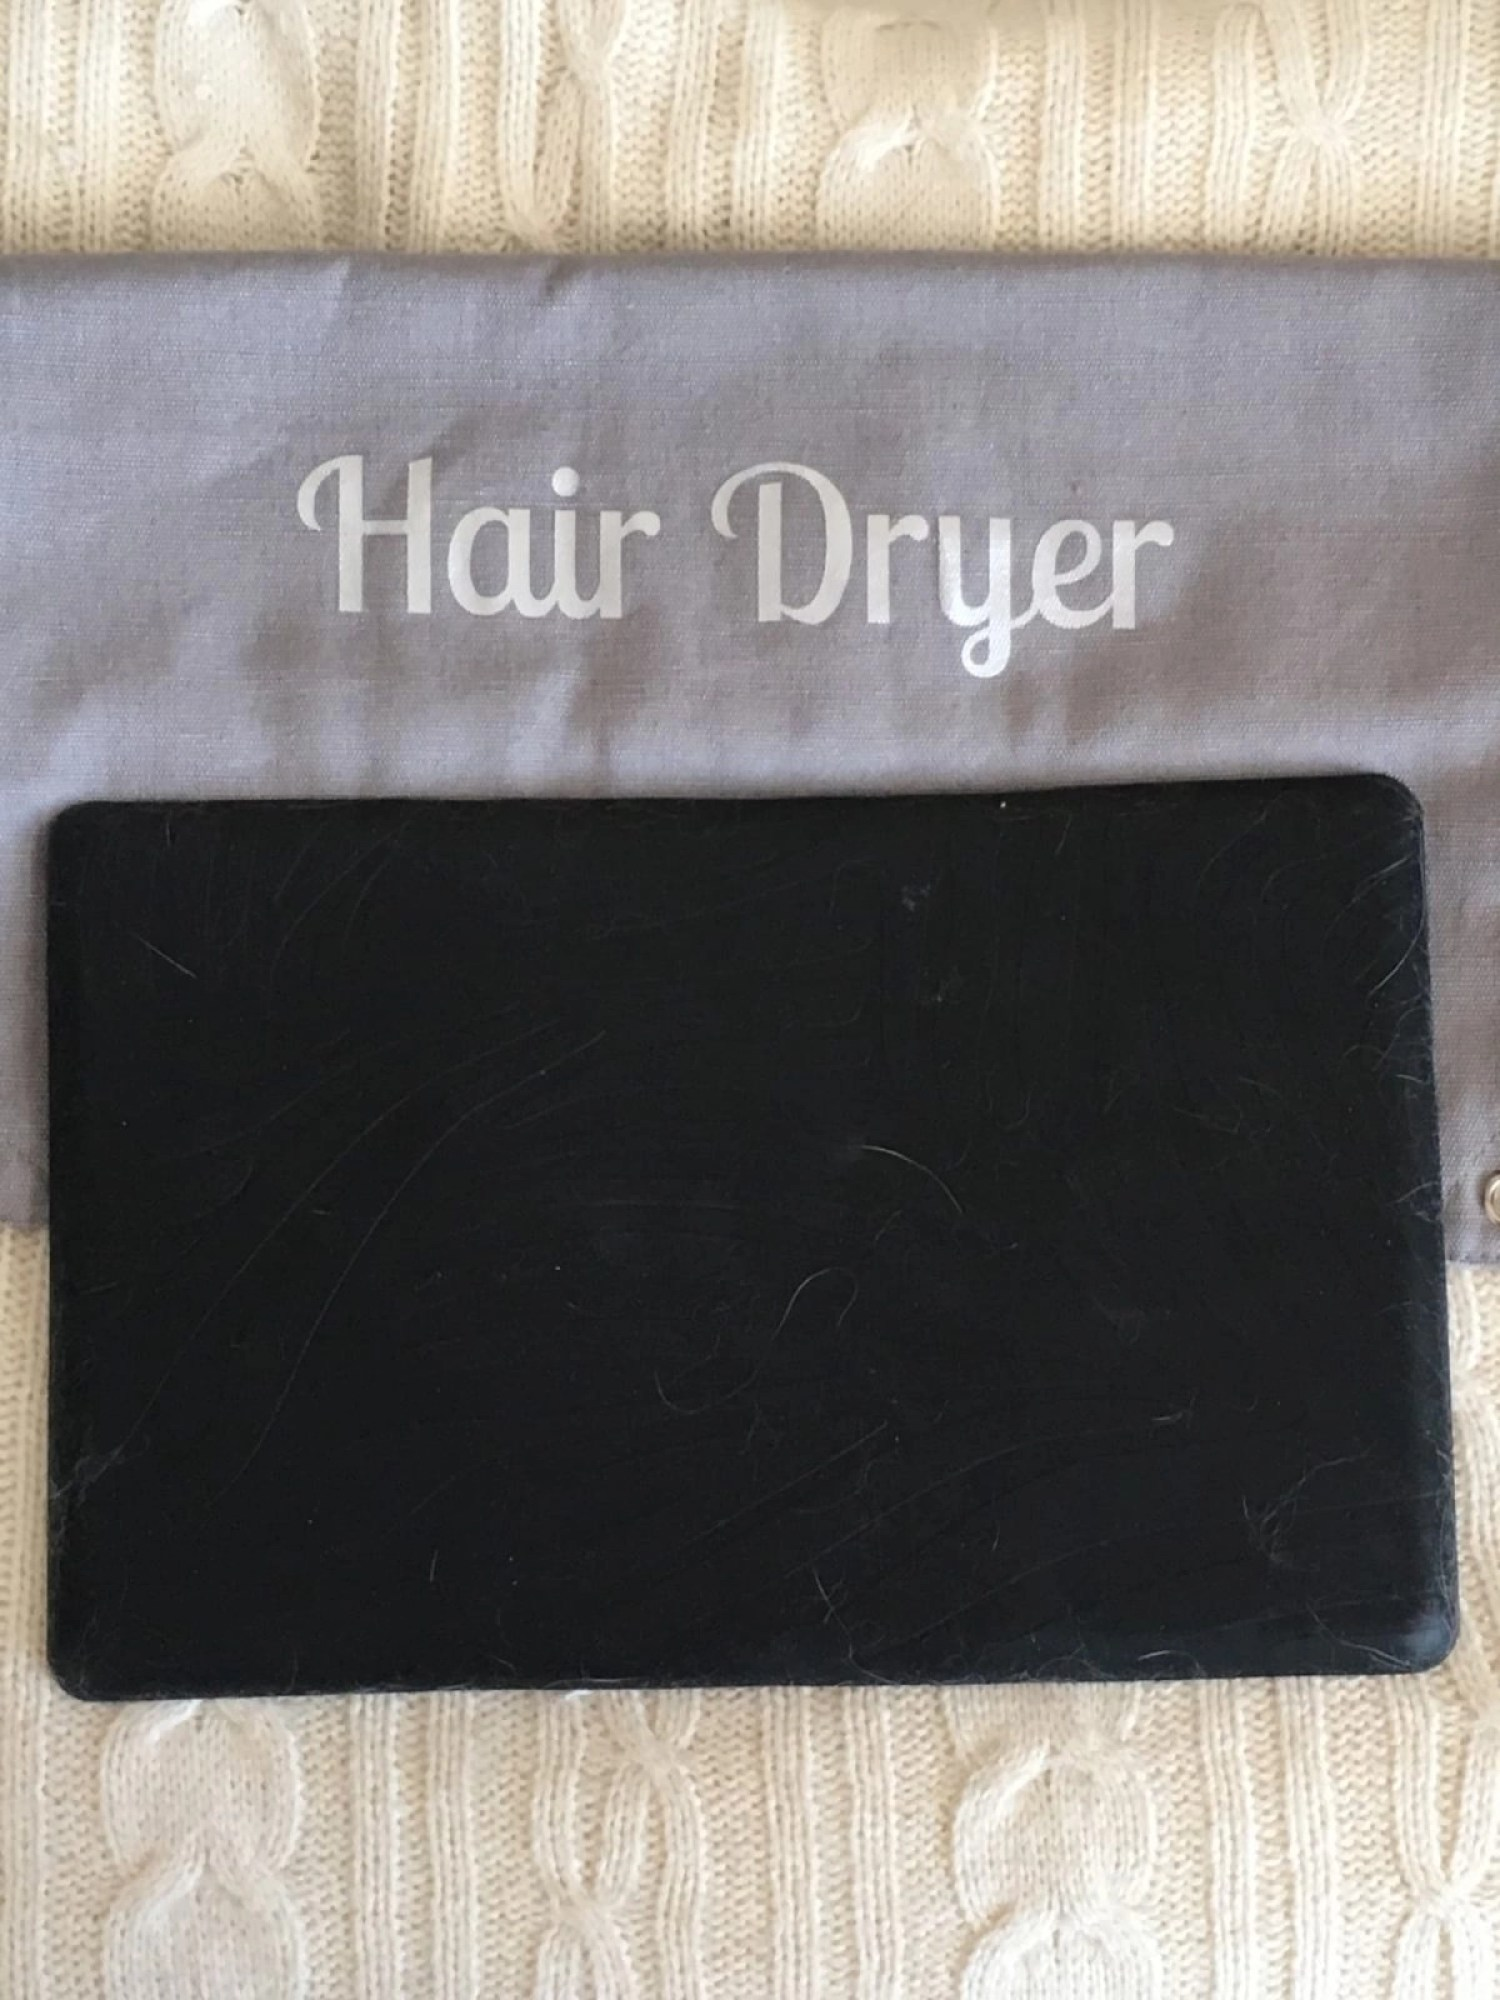 Does This Mat Protect Your Countertop While Styling Your Hair? - Mod Motive Hair Dryer Bag and Heat-Resistant Station Mat